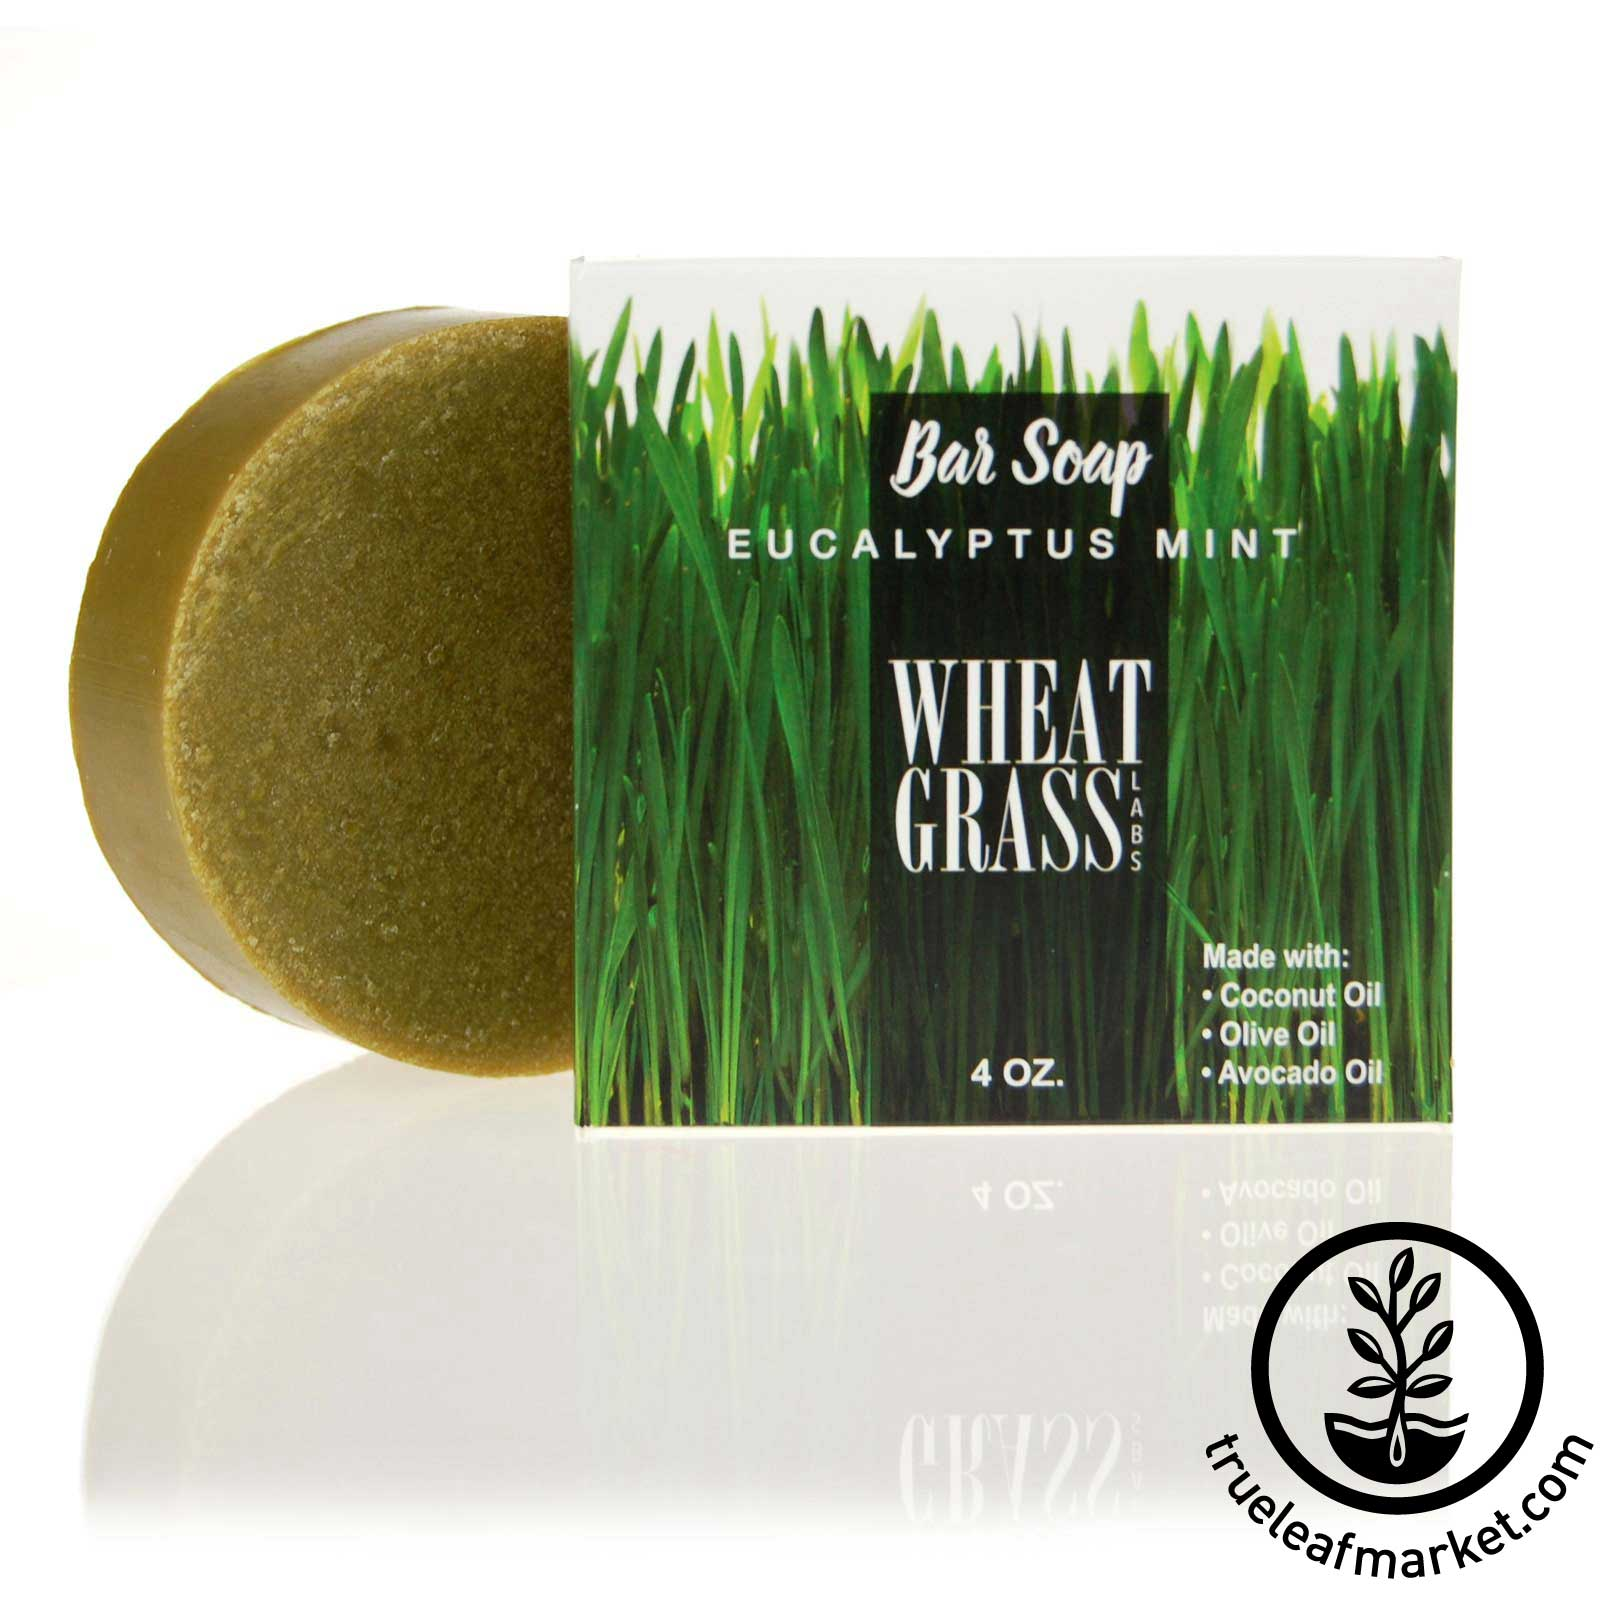 Wheatgrass and Eucalyptus Mint Bar Soap